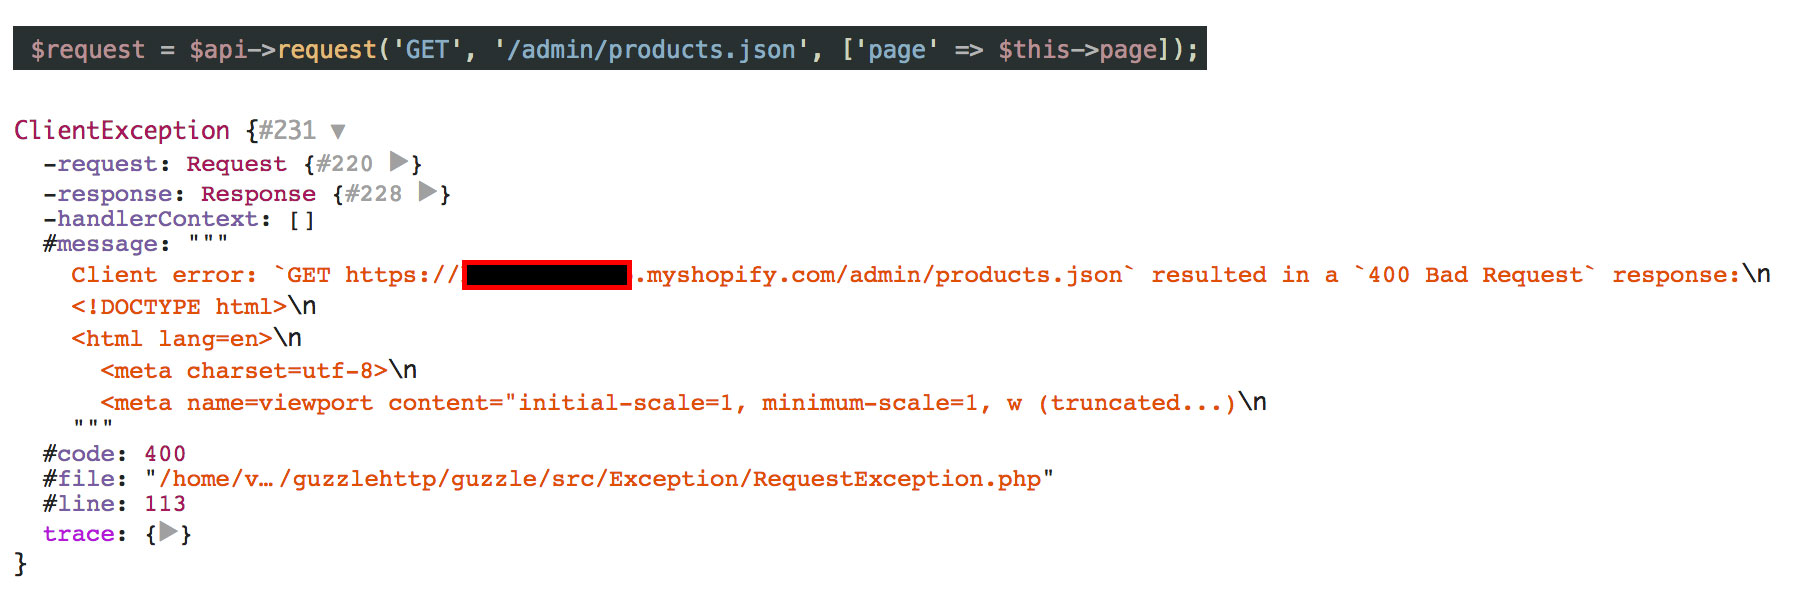 Newly created shops do not allow GET params to be sent as JSON